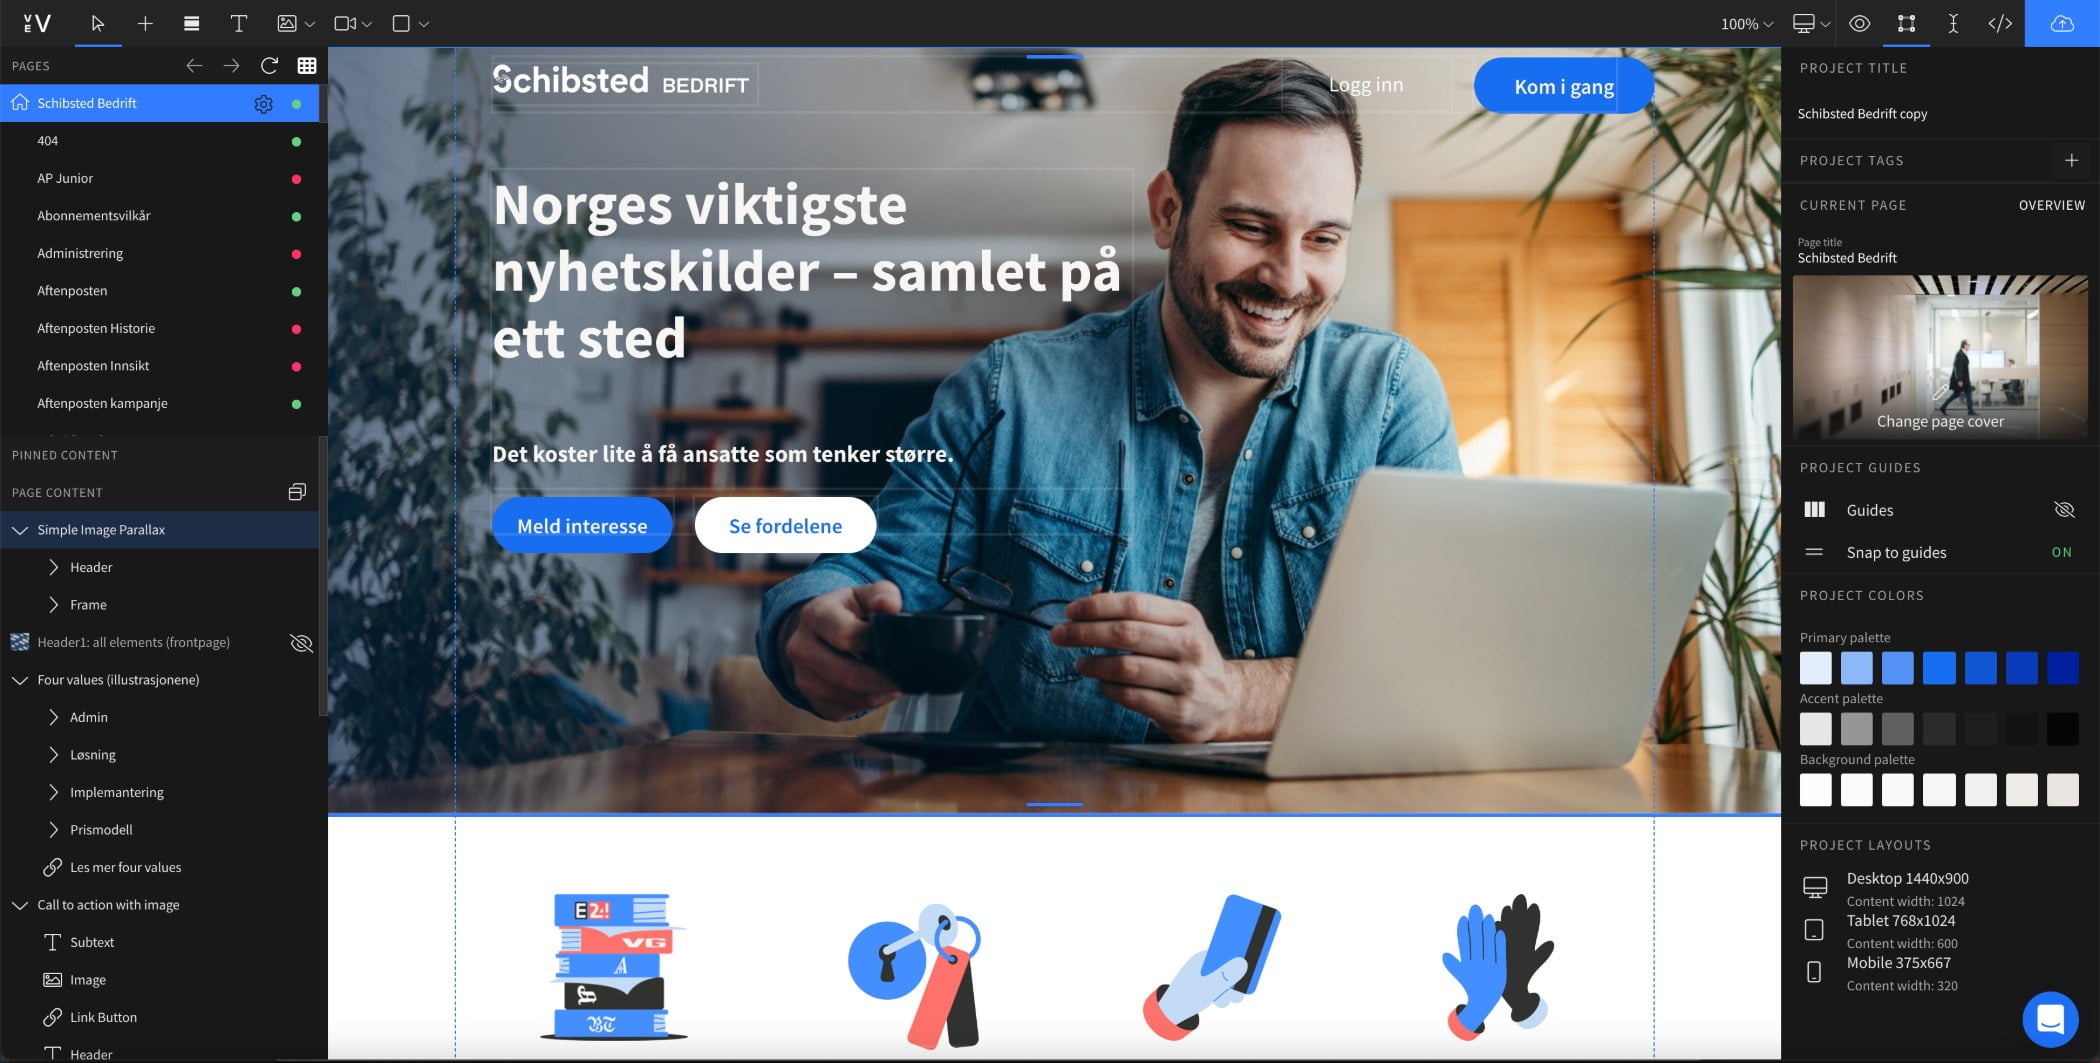 Design Editor view of Schibsted design, Business website with smiling man